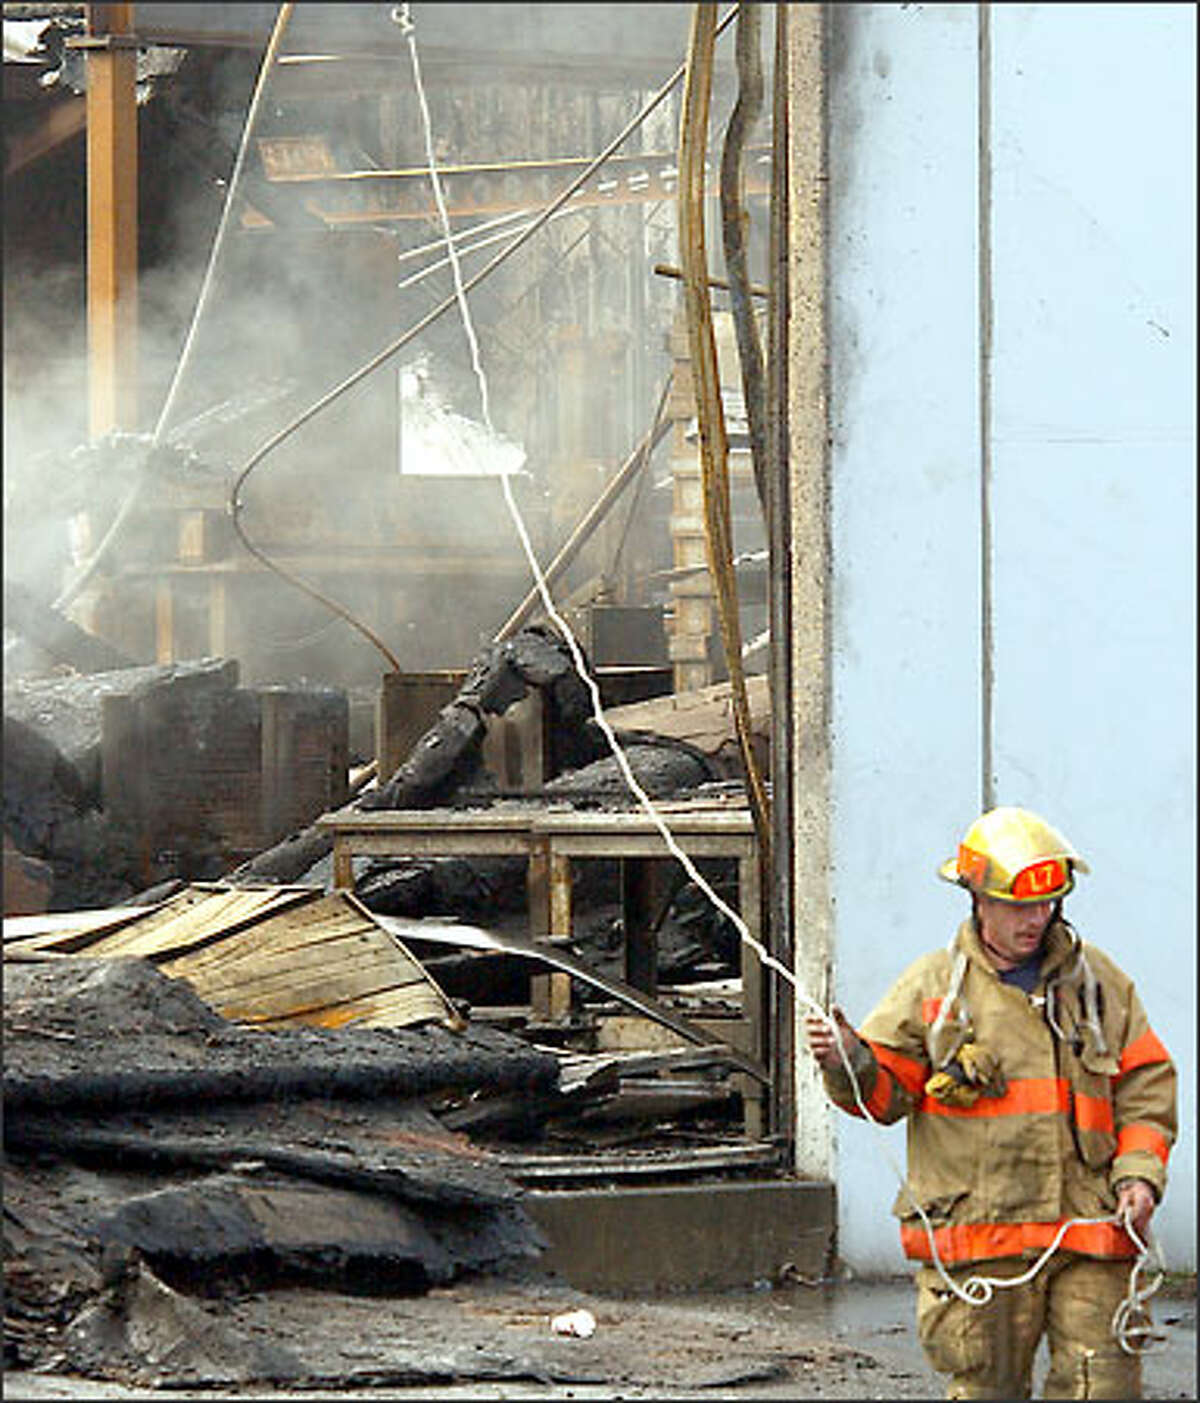 A Seattle firefighter drags a line that guides an overhead nozzle in an effort to put out a still-smoldering fire at Capital Industries, a Georgetown metal-fabricating company. The main building of the third-generation family business was destroyed by the blaze Sunday.